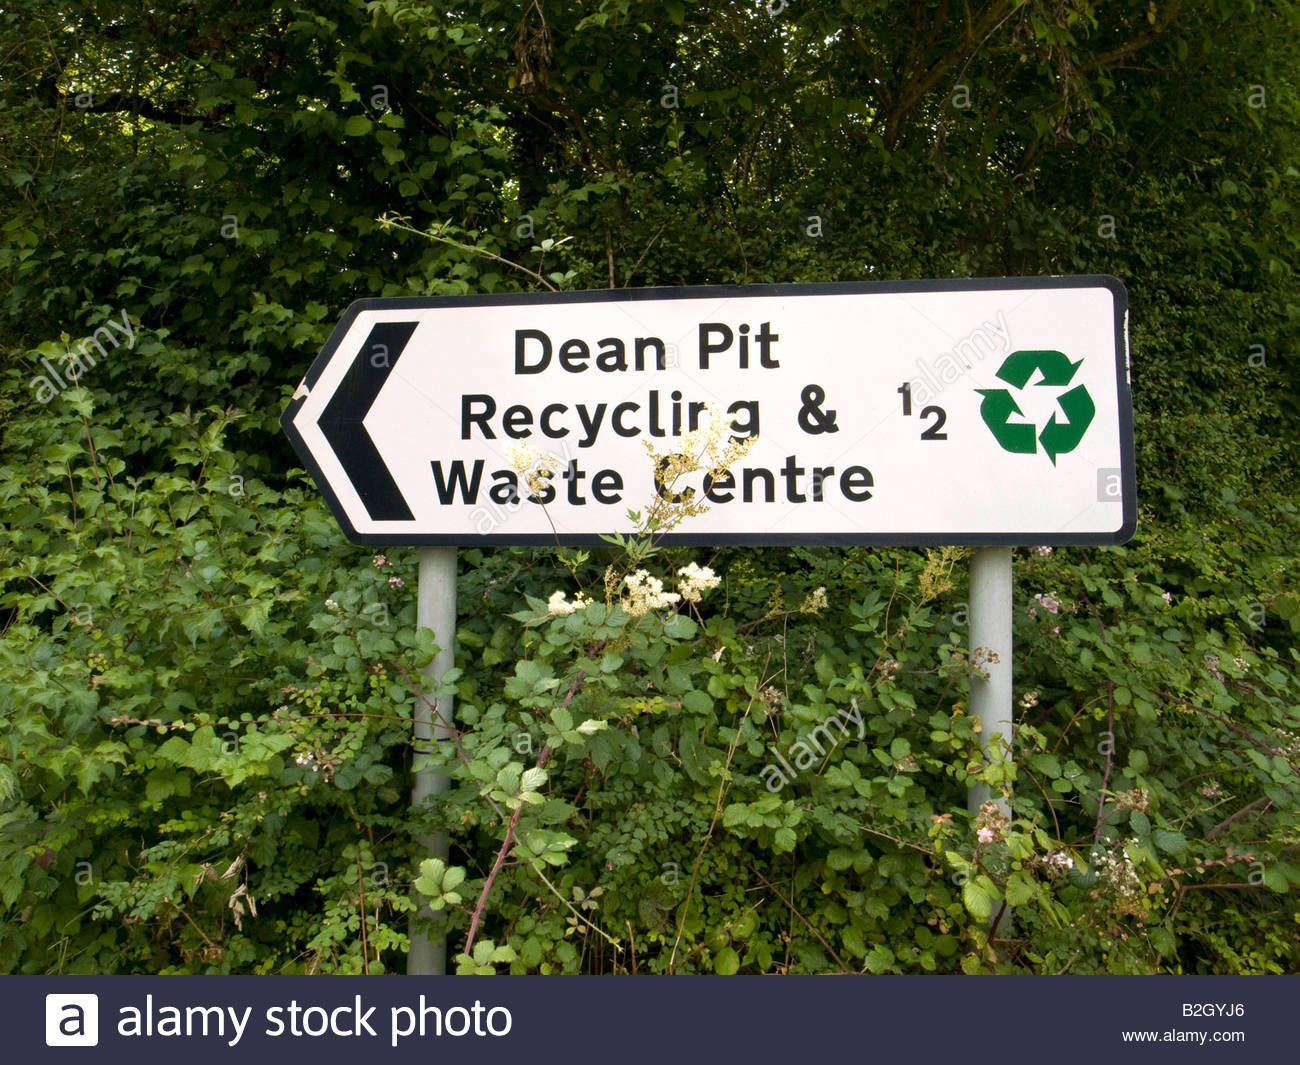 Sign giving directions to Recycling and waste centre in Dean in Oxfordshire countryside - Stock Image